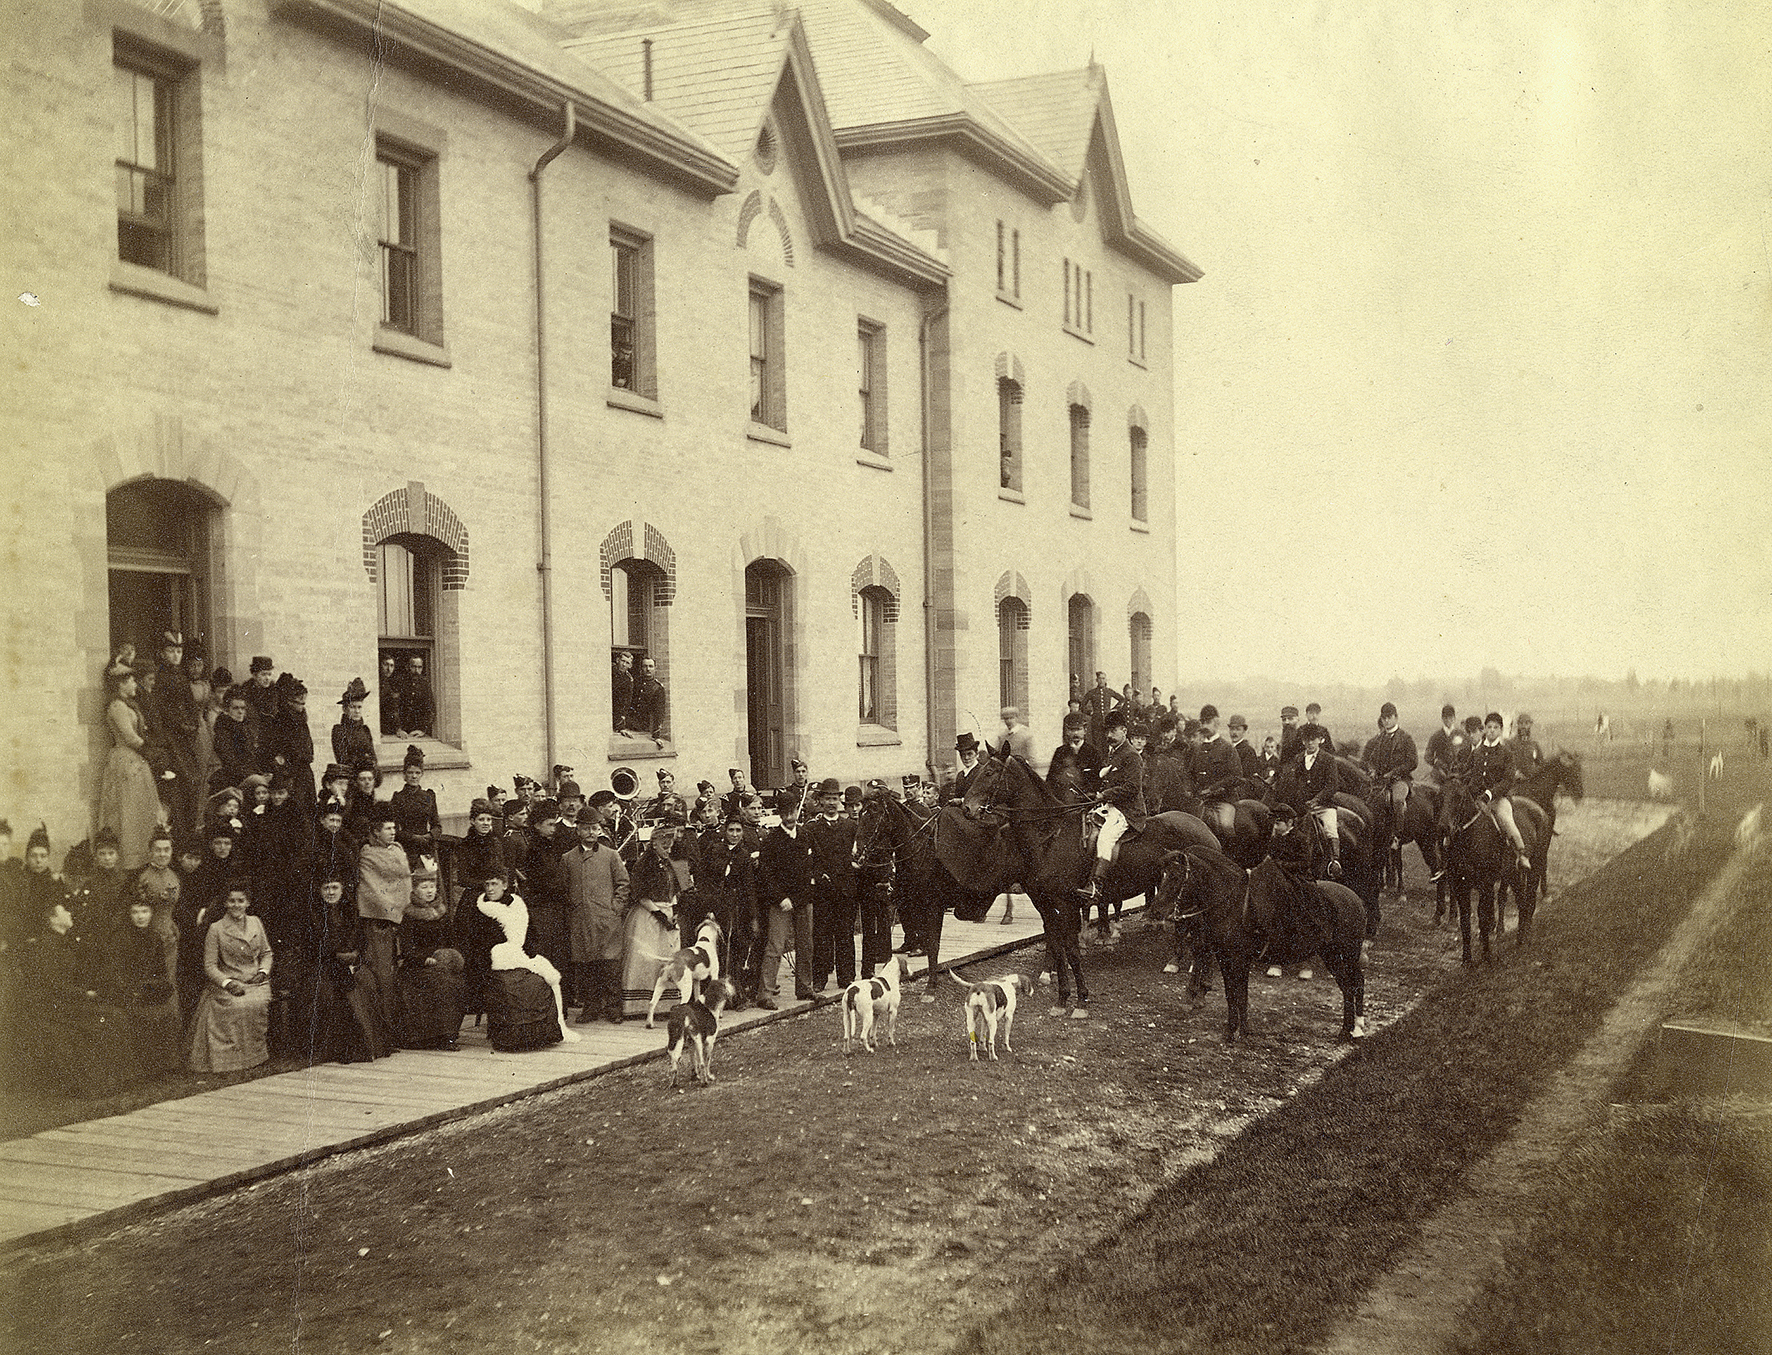 Fox Hunt at The Infantry School Building c. 1890